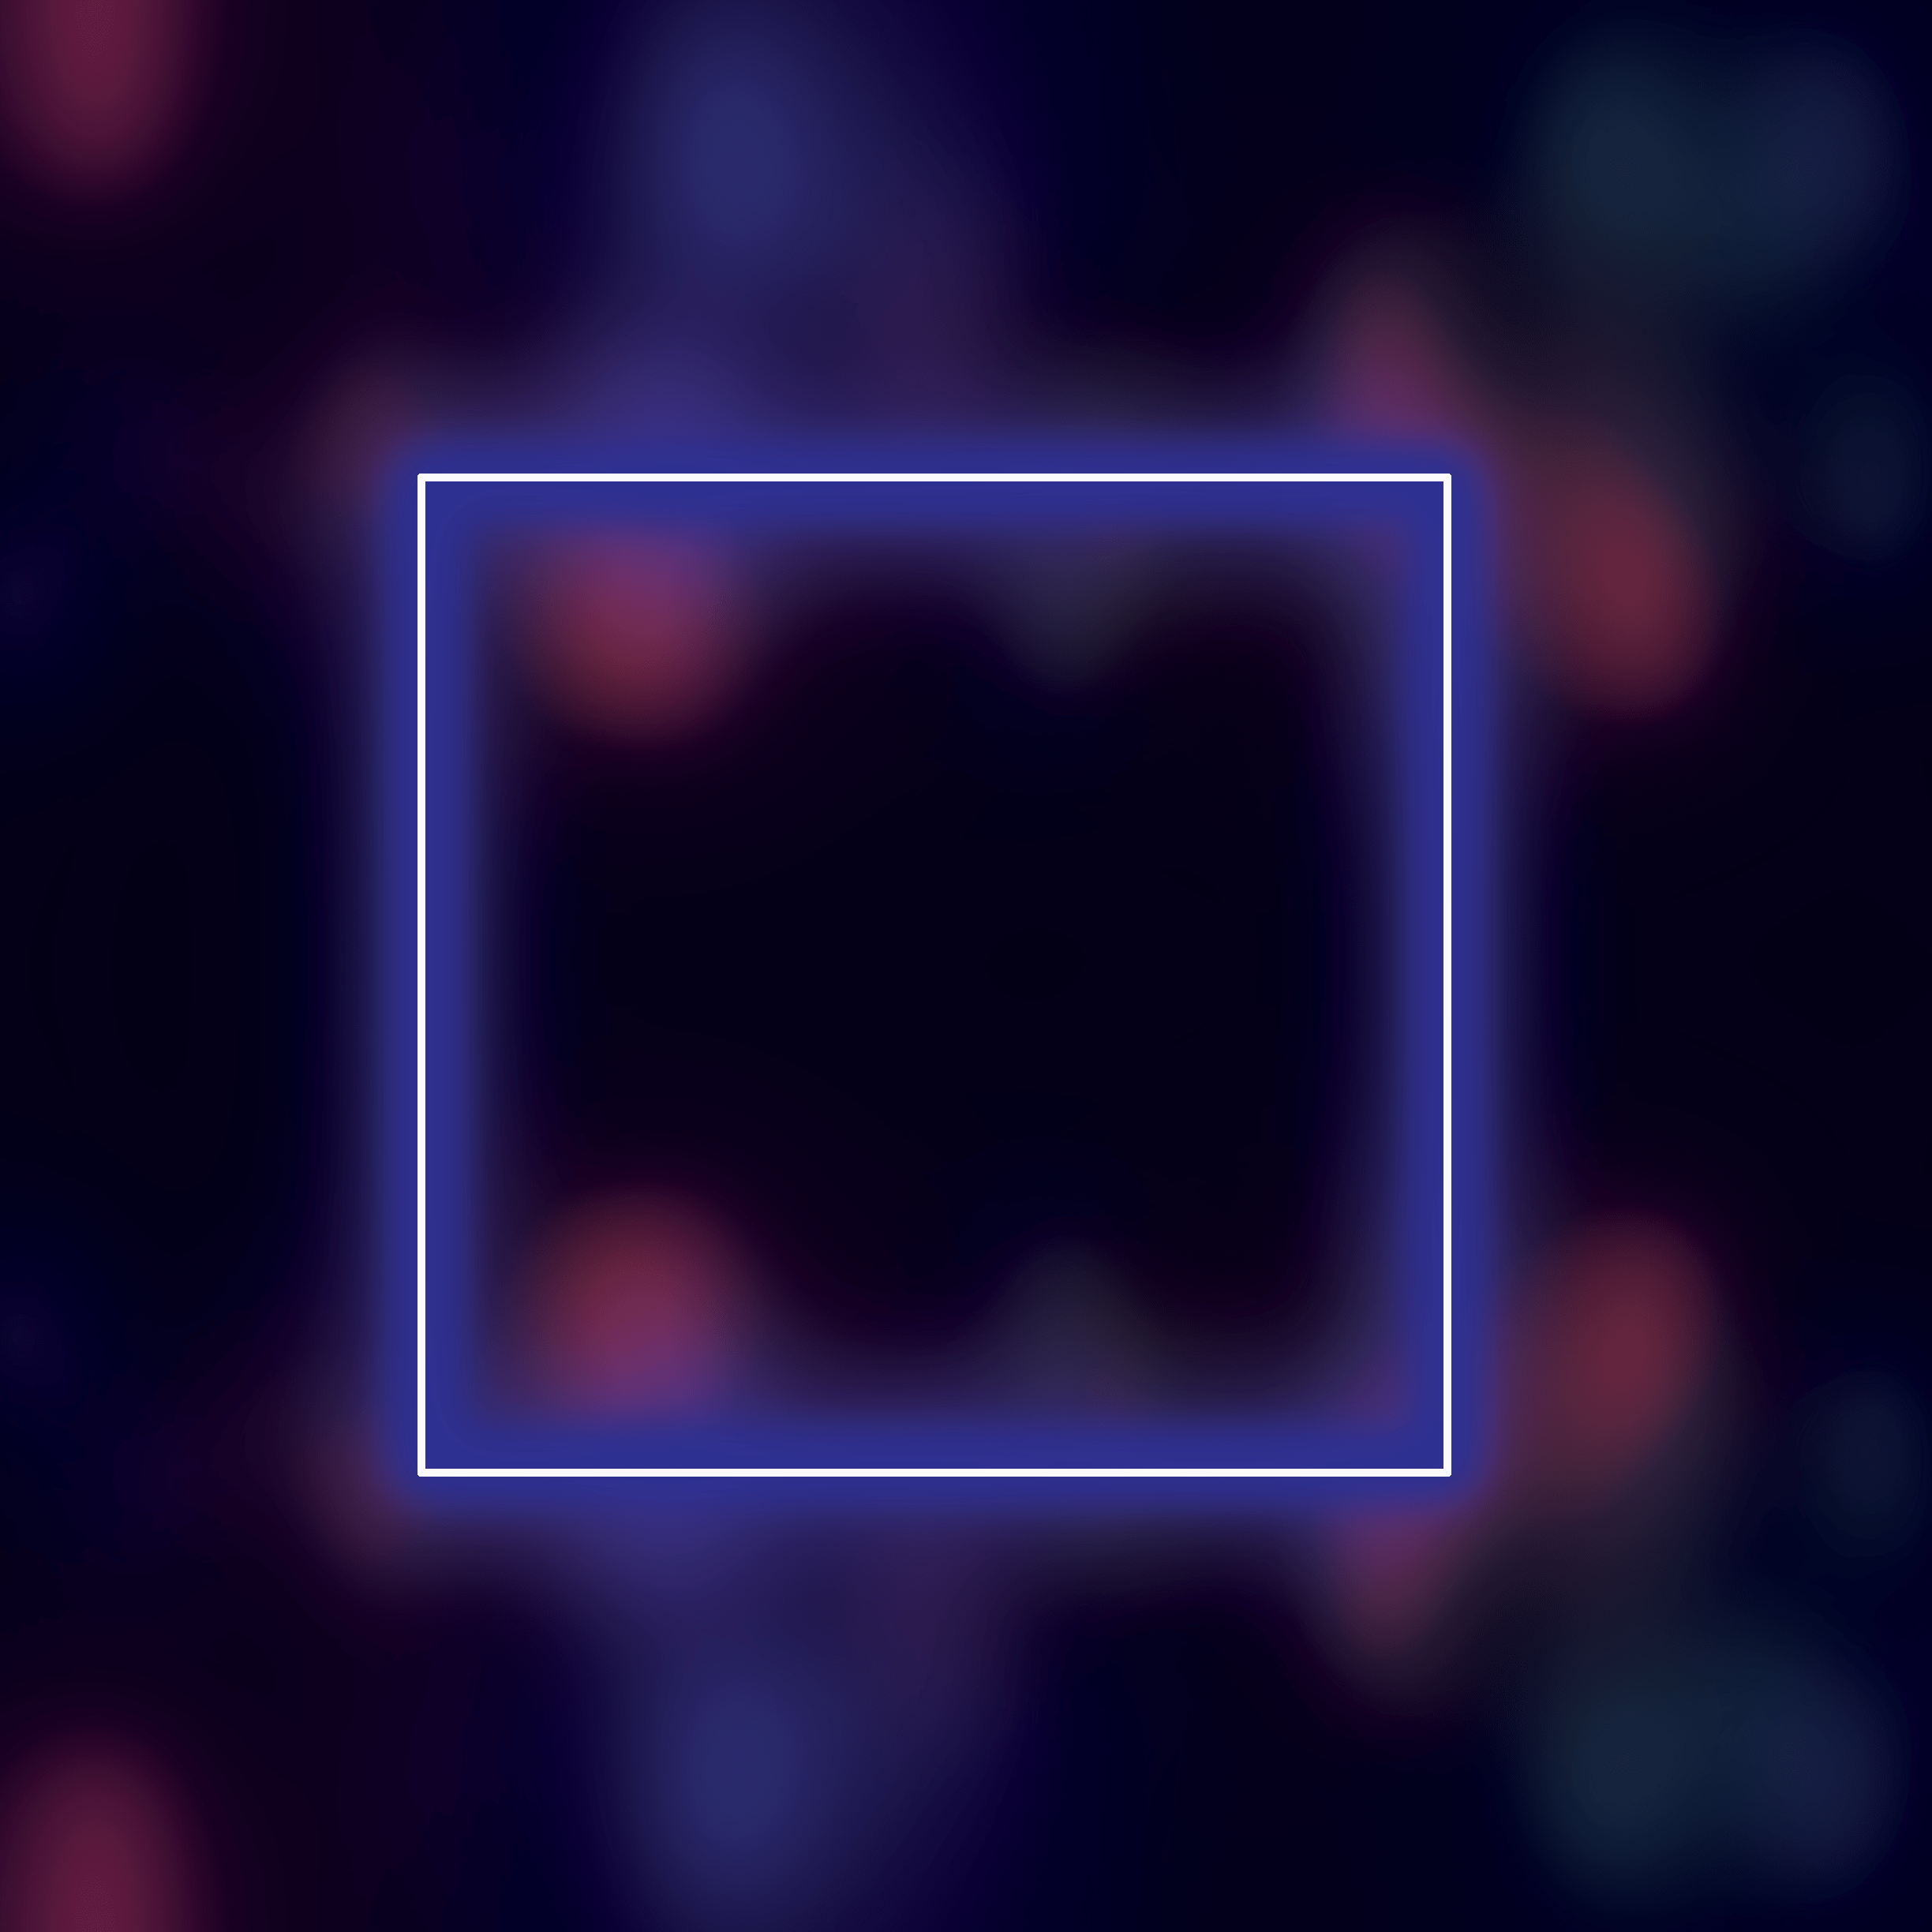 Background with glowing neon square 2448 x 2448